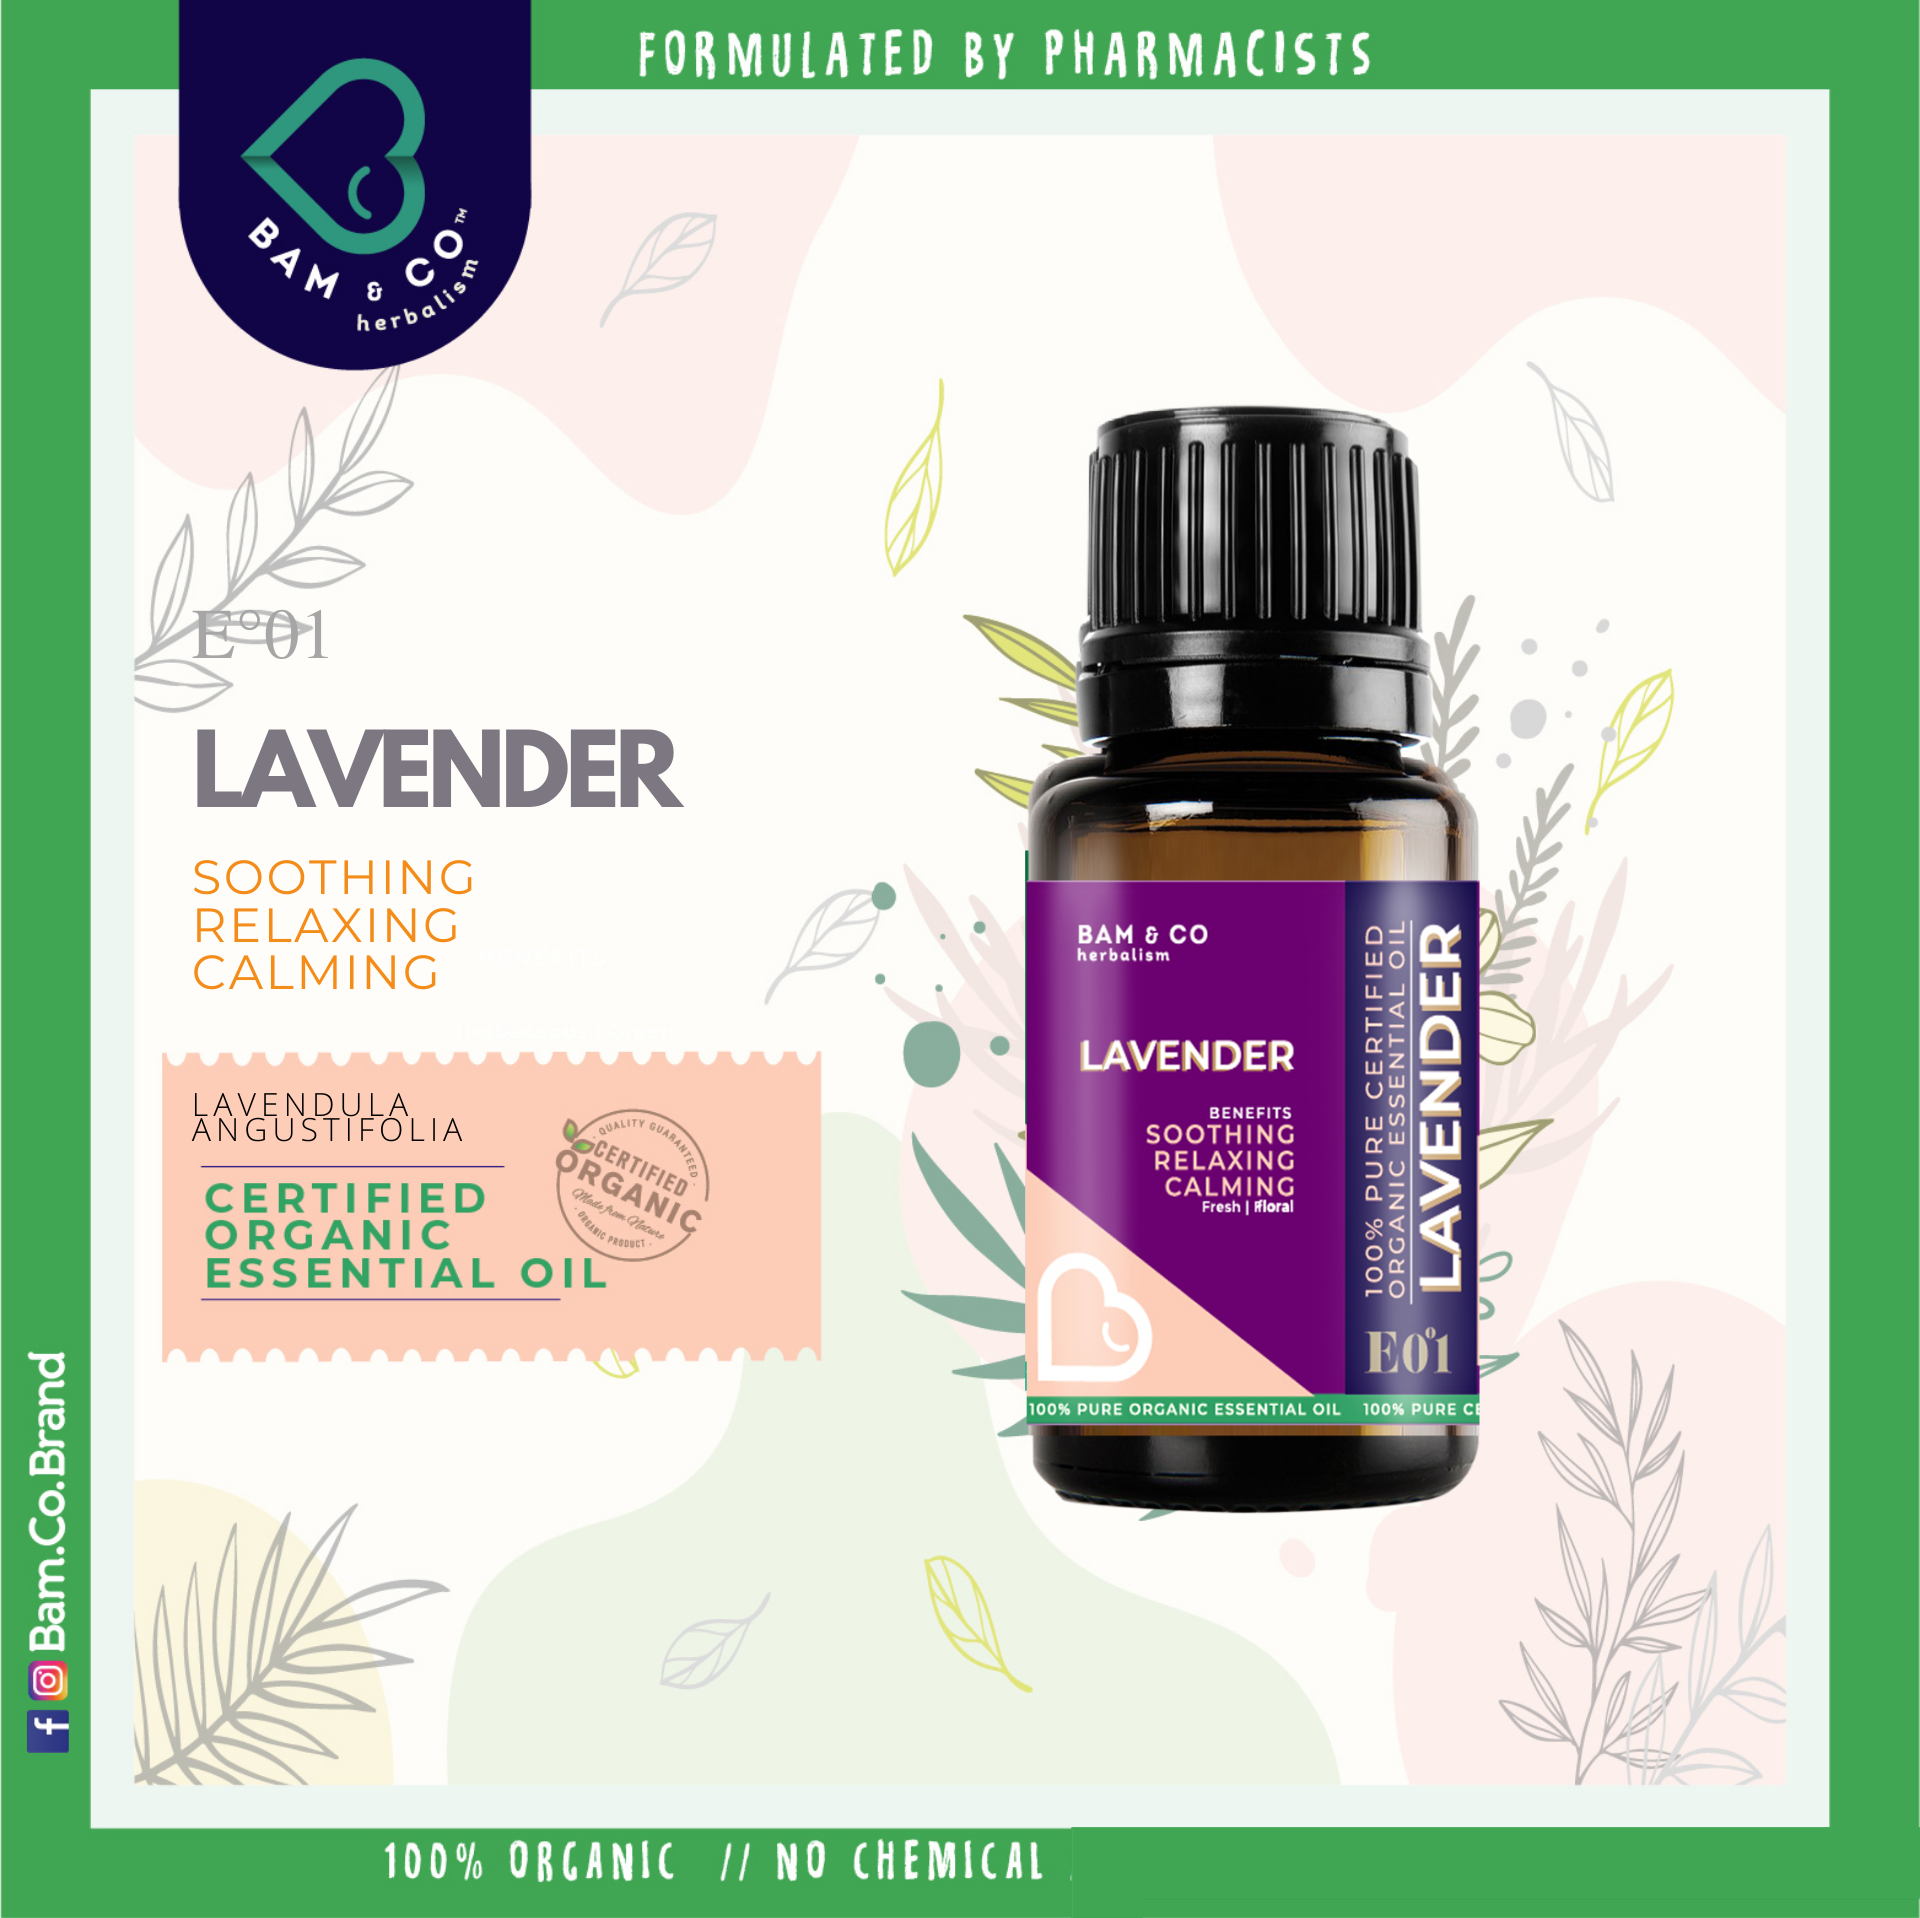 BAM & CO. LAVENDER CERTIFIED PURE ORGANIC ESSENTIAL OIL PERFECT FOR HUMIDIFIER 5ML 10ML AROMATHERAPHY